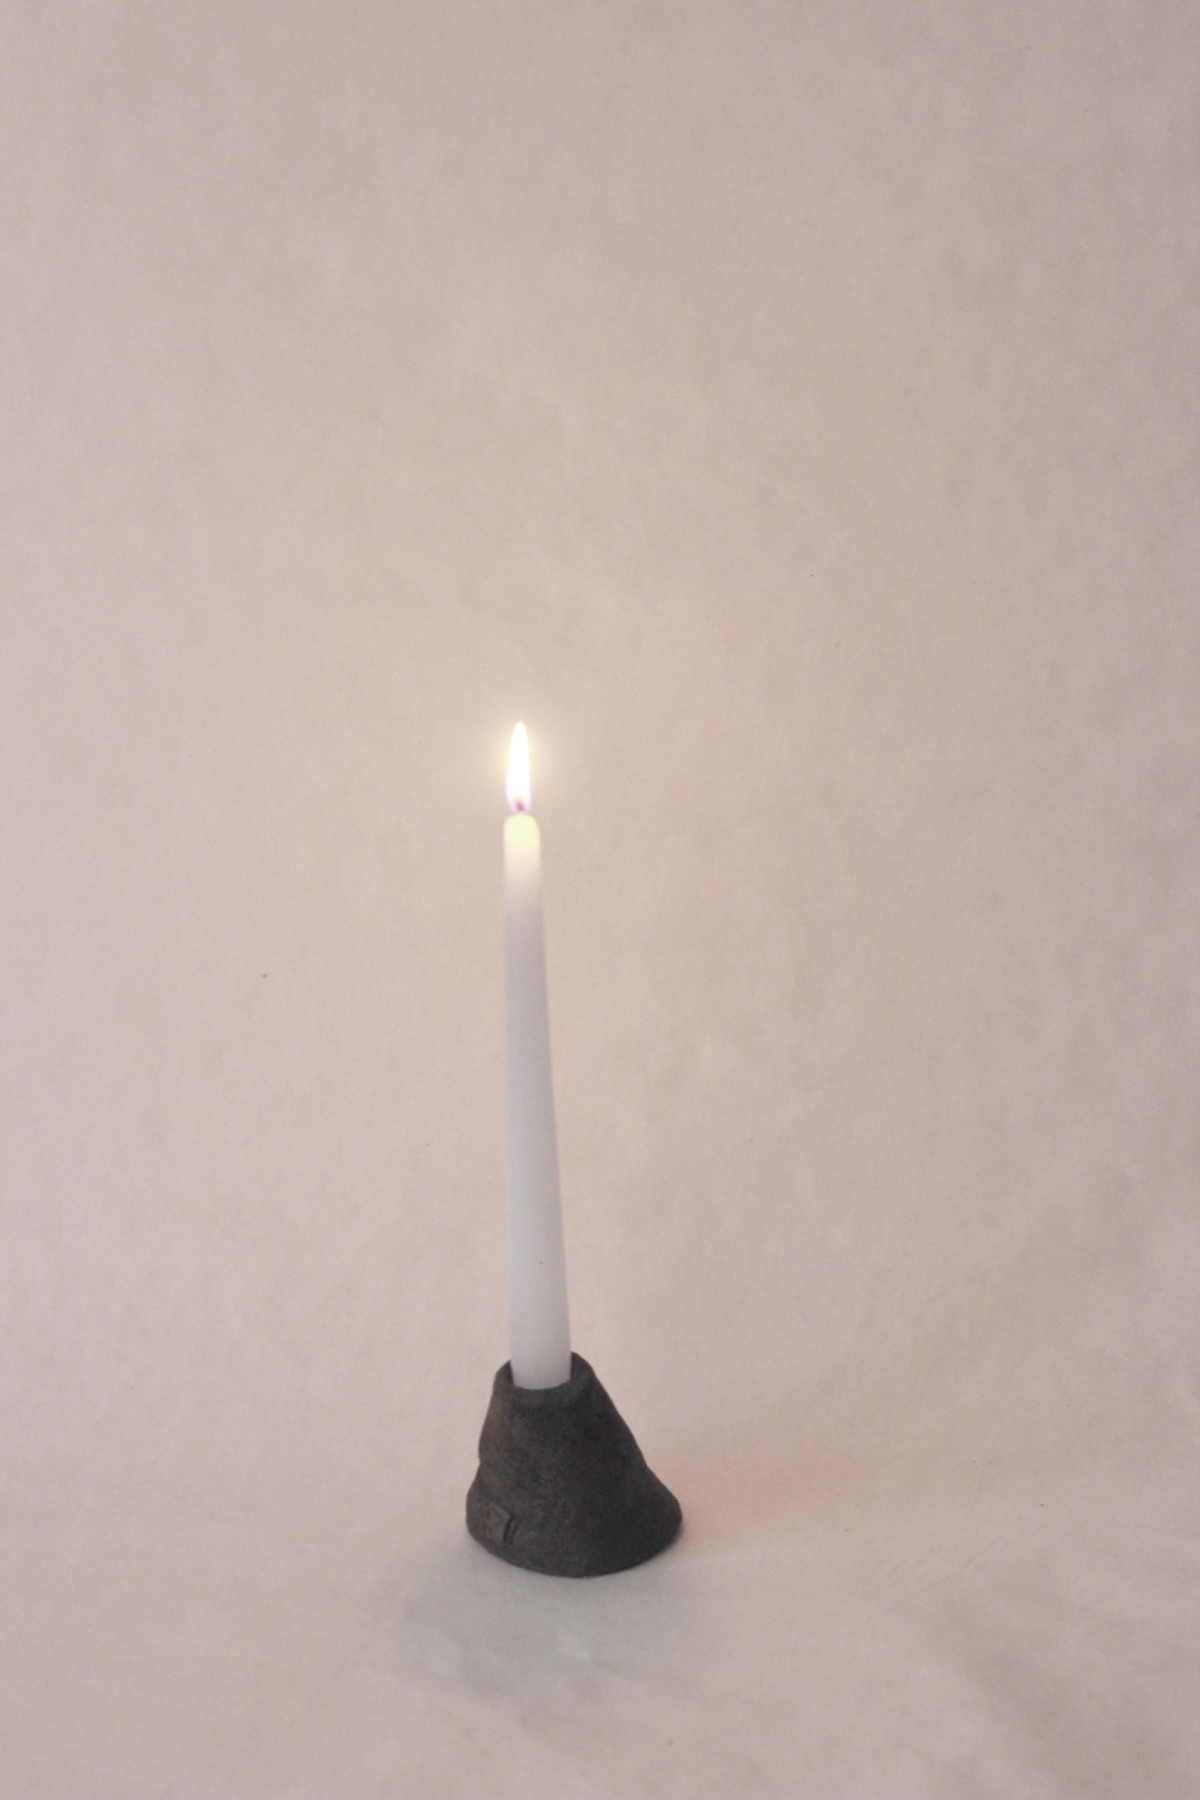 brown ceramic candle holder with lighted candle on a gray background 1